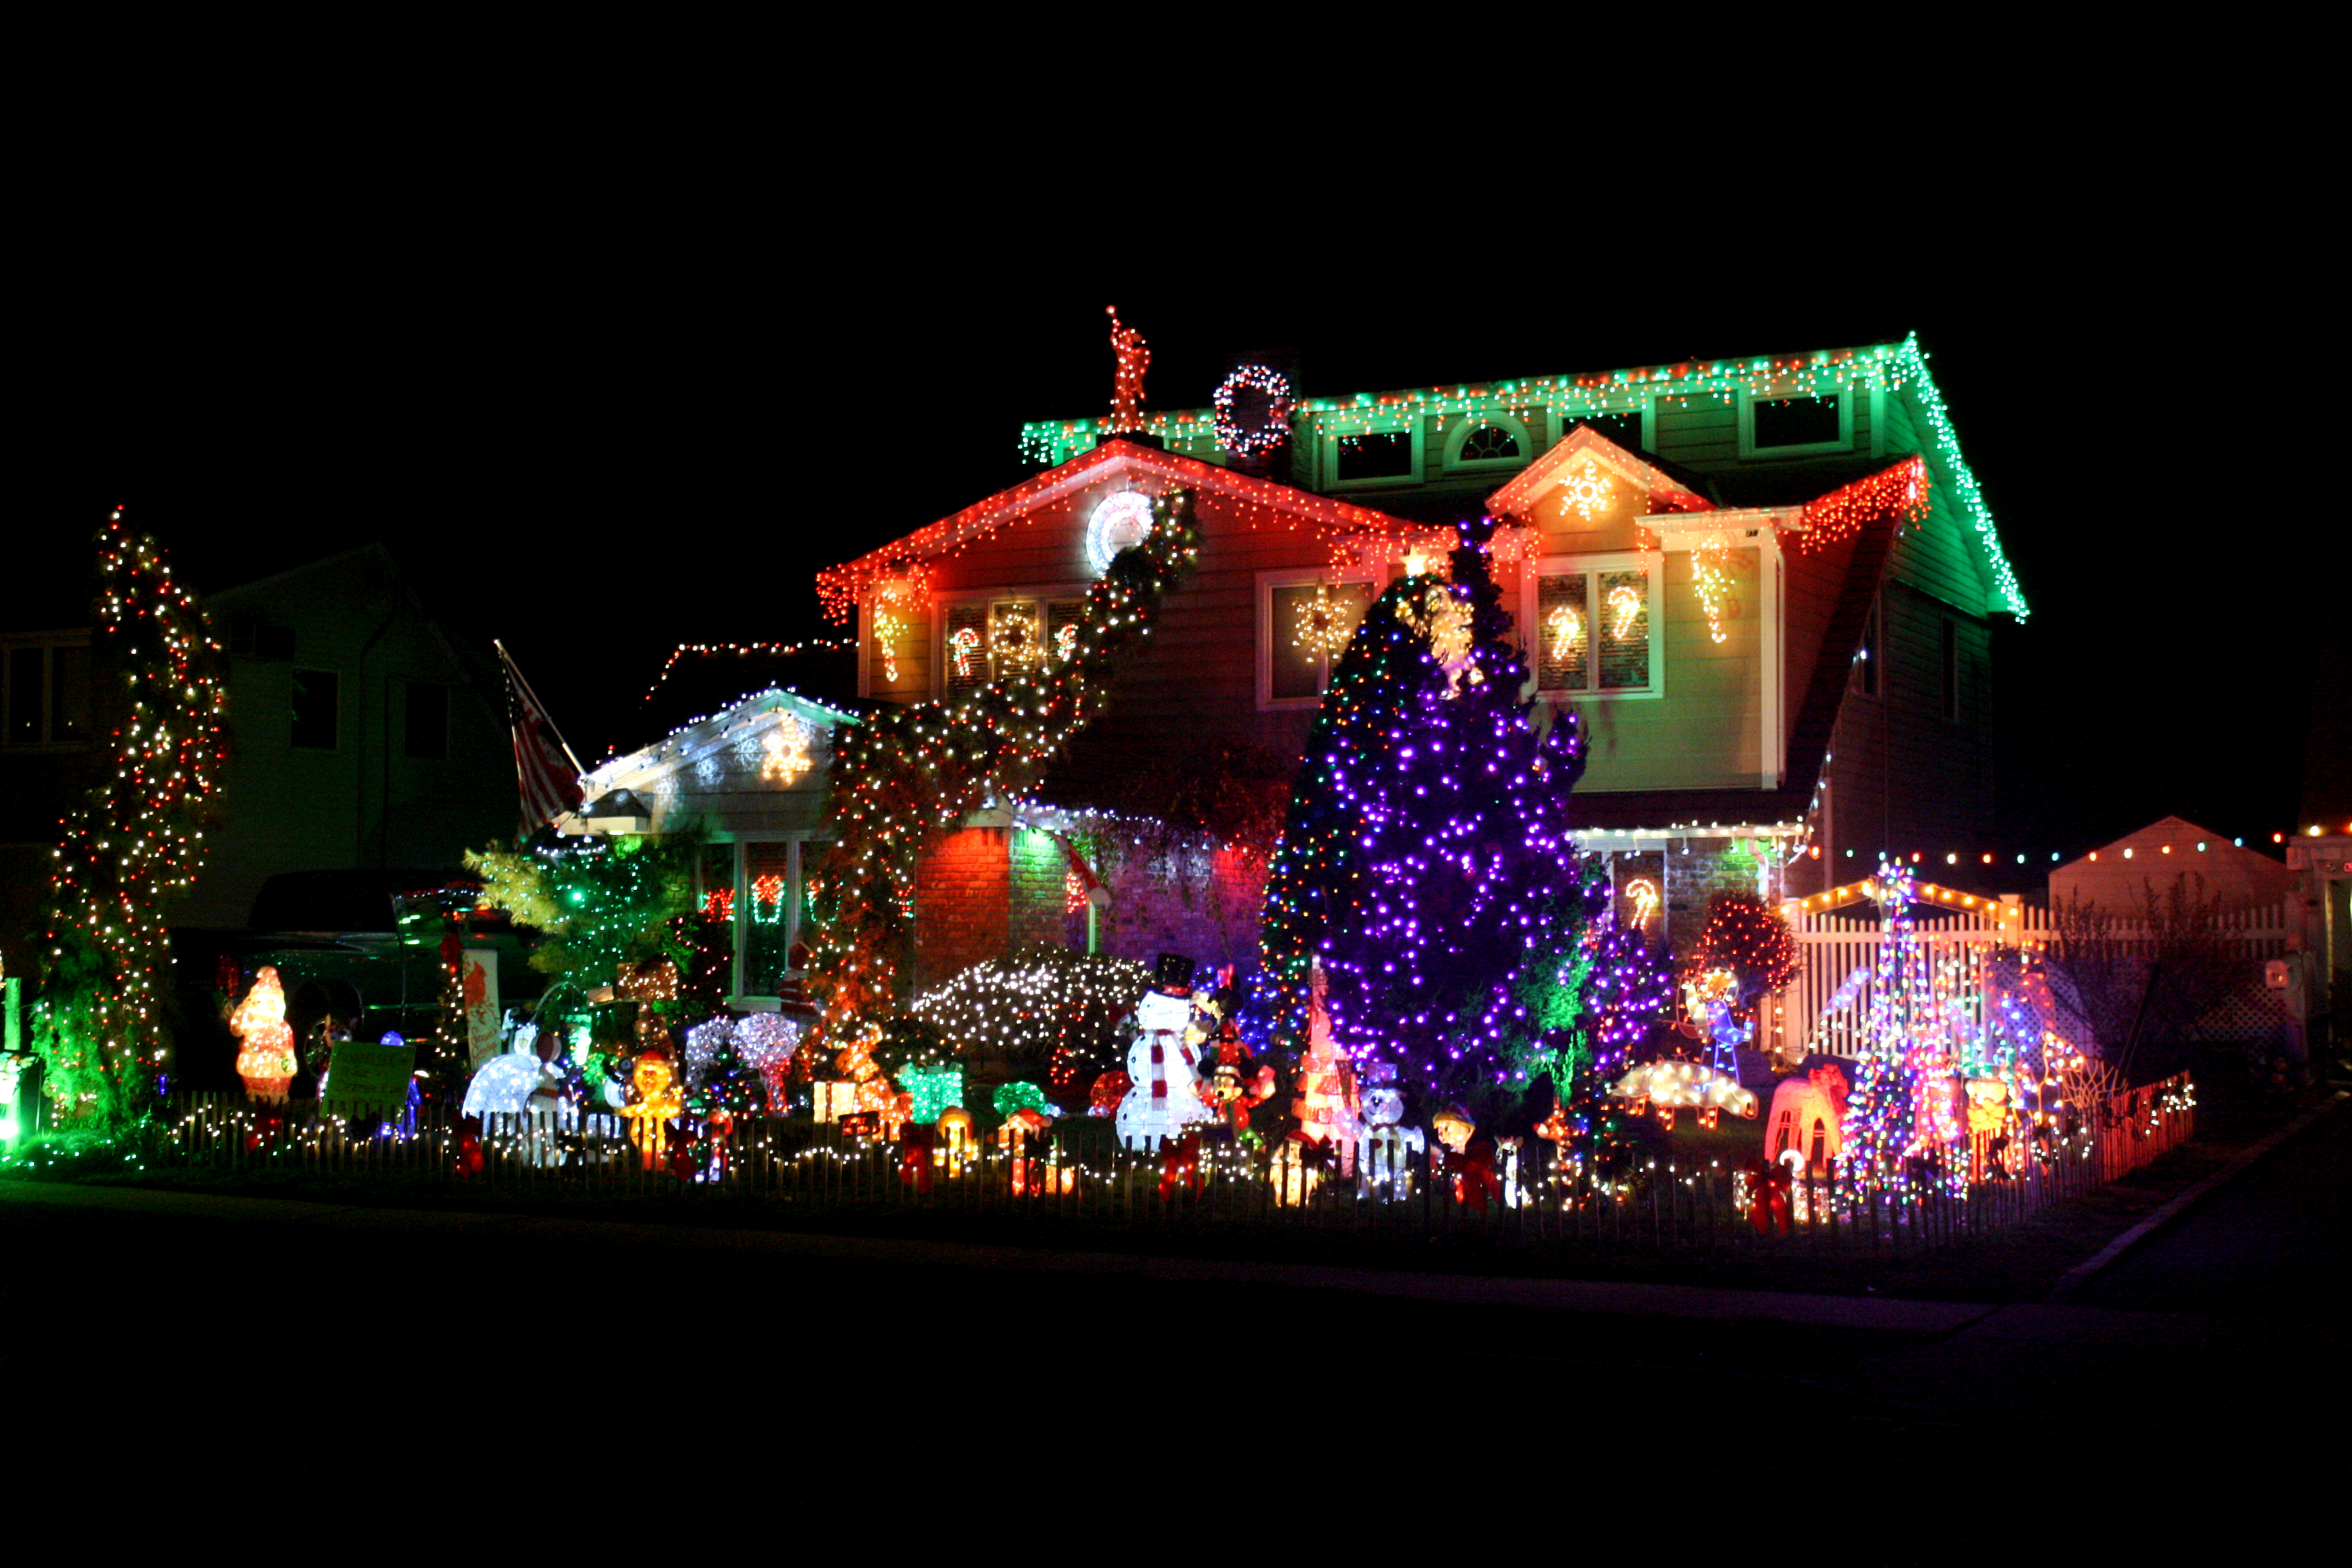 According To Newsday The Engels Have Been Growing Their Light Display For Years House Is A Common Stop On Holiday Tours In Nau County